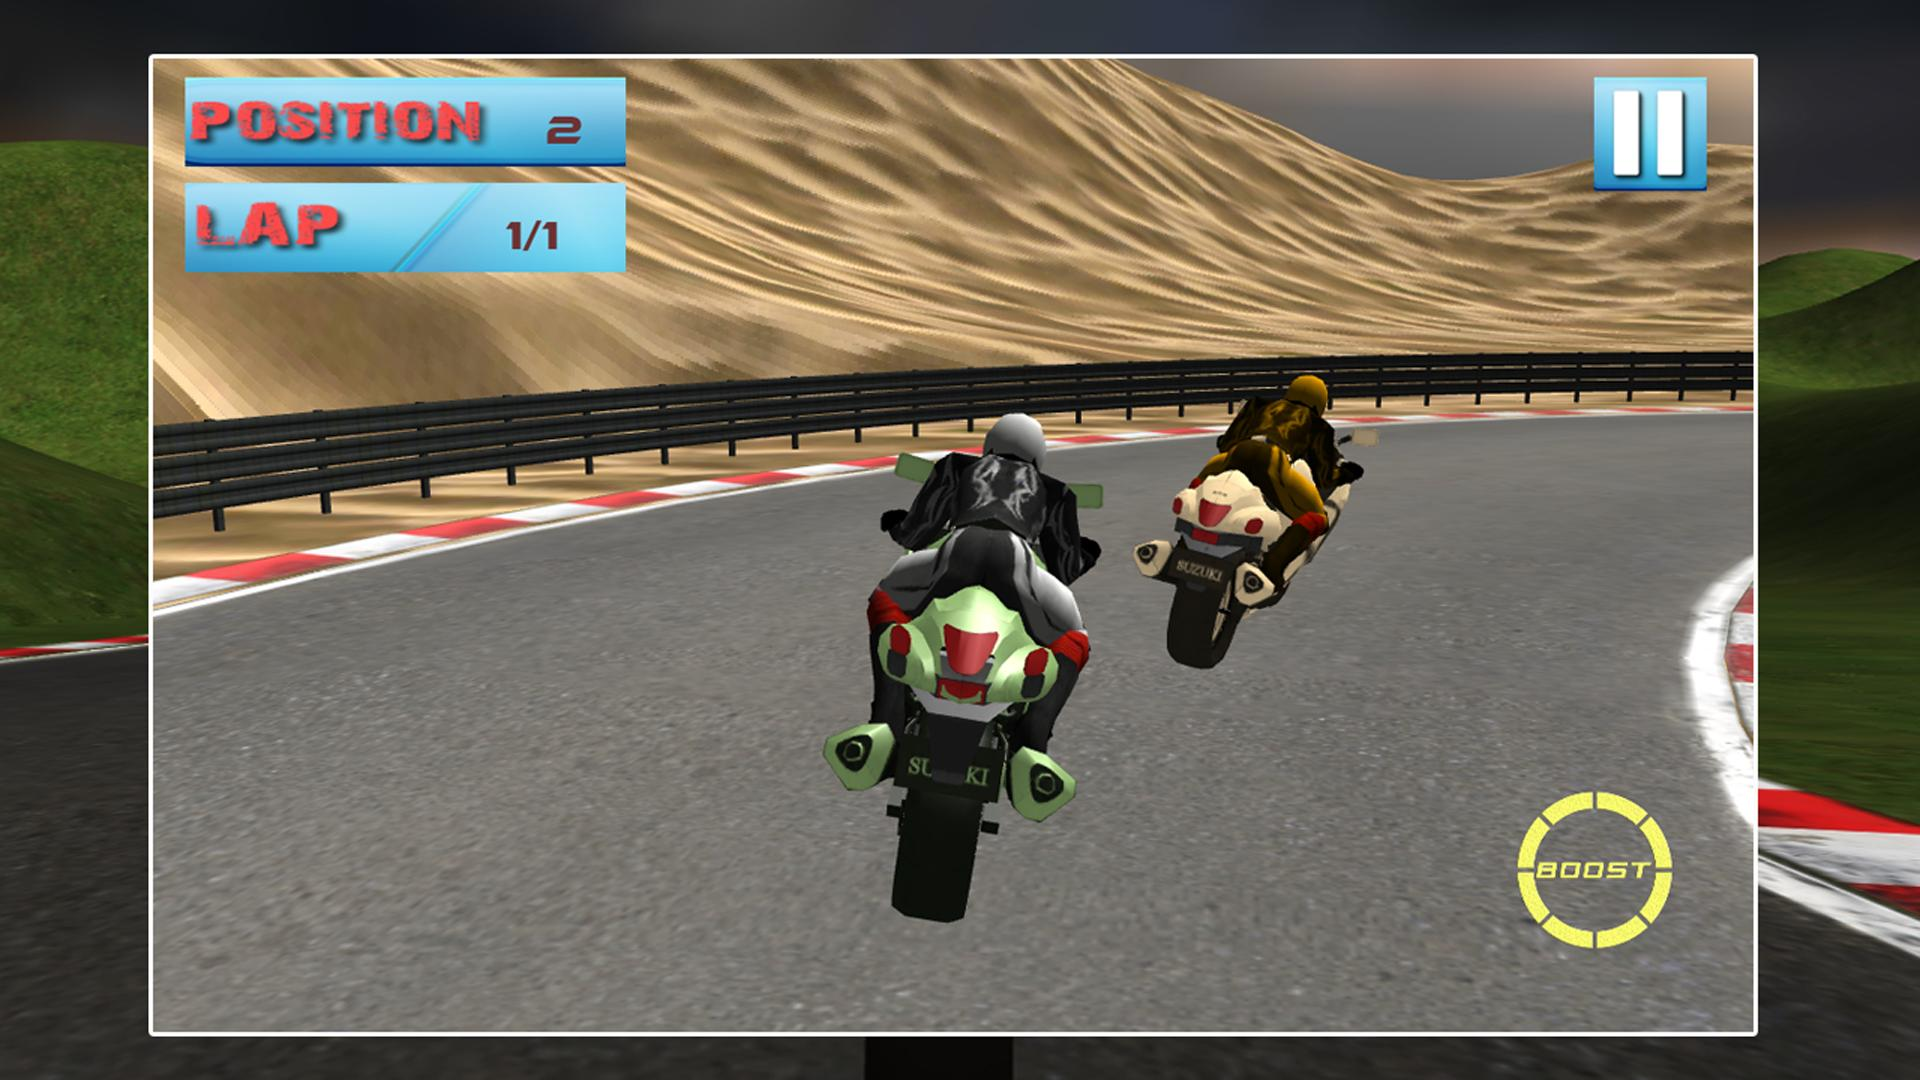 Real Bike Racing - Top Motorcycle Racing Games for Android